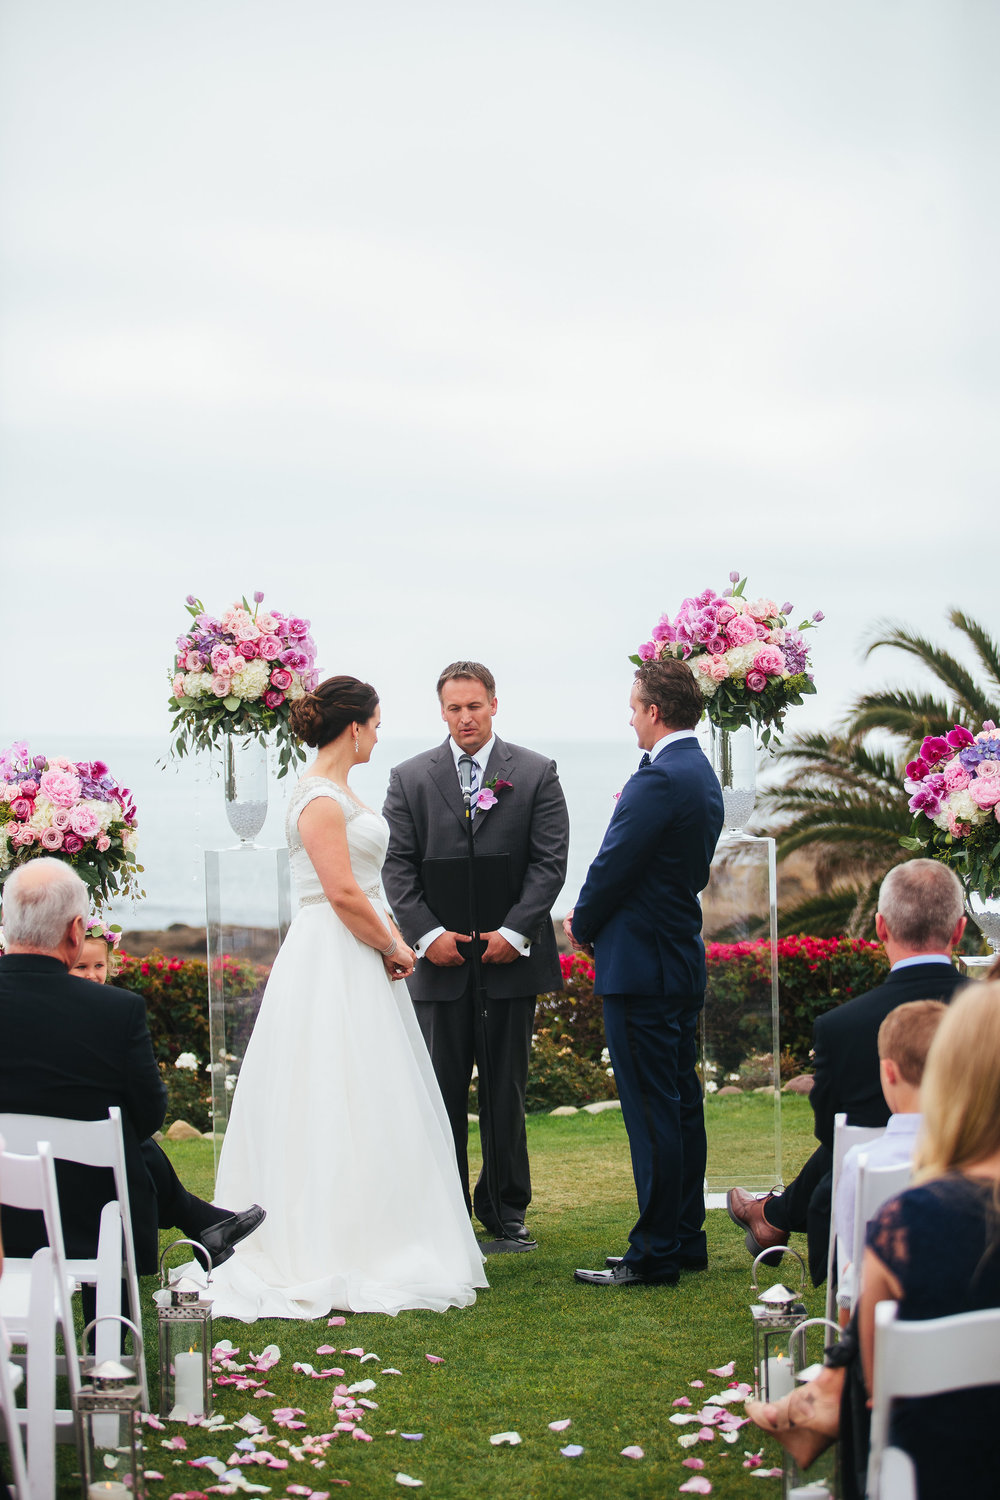 Purple, Pink, and Ivory Wedding at Montage Laguna Beach. Image by Amanda McKinnon.